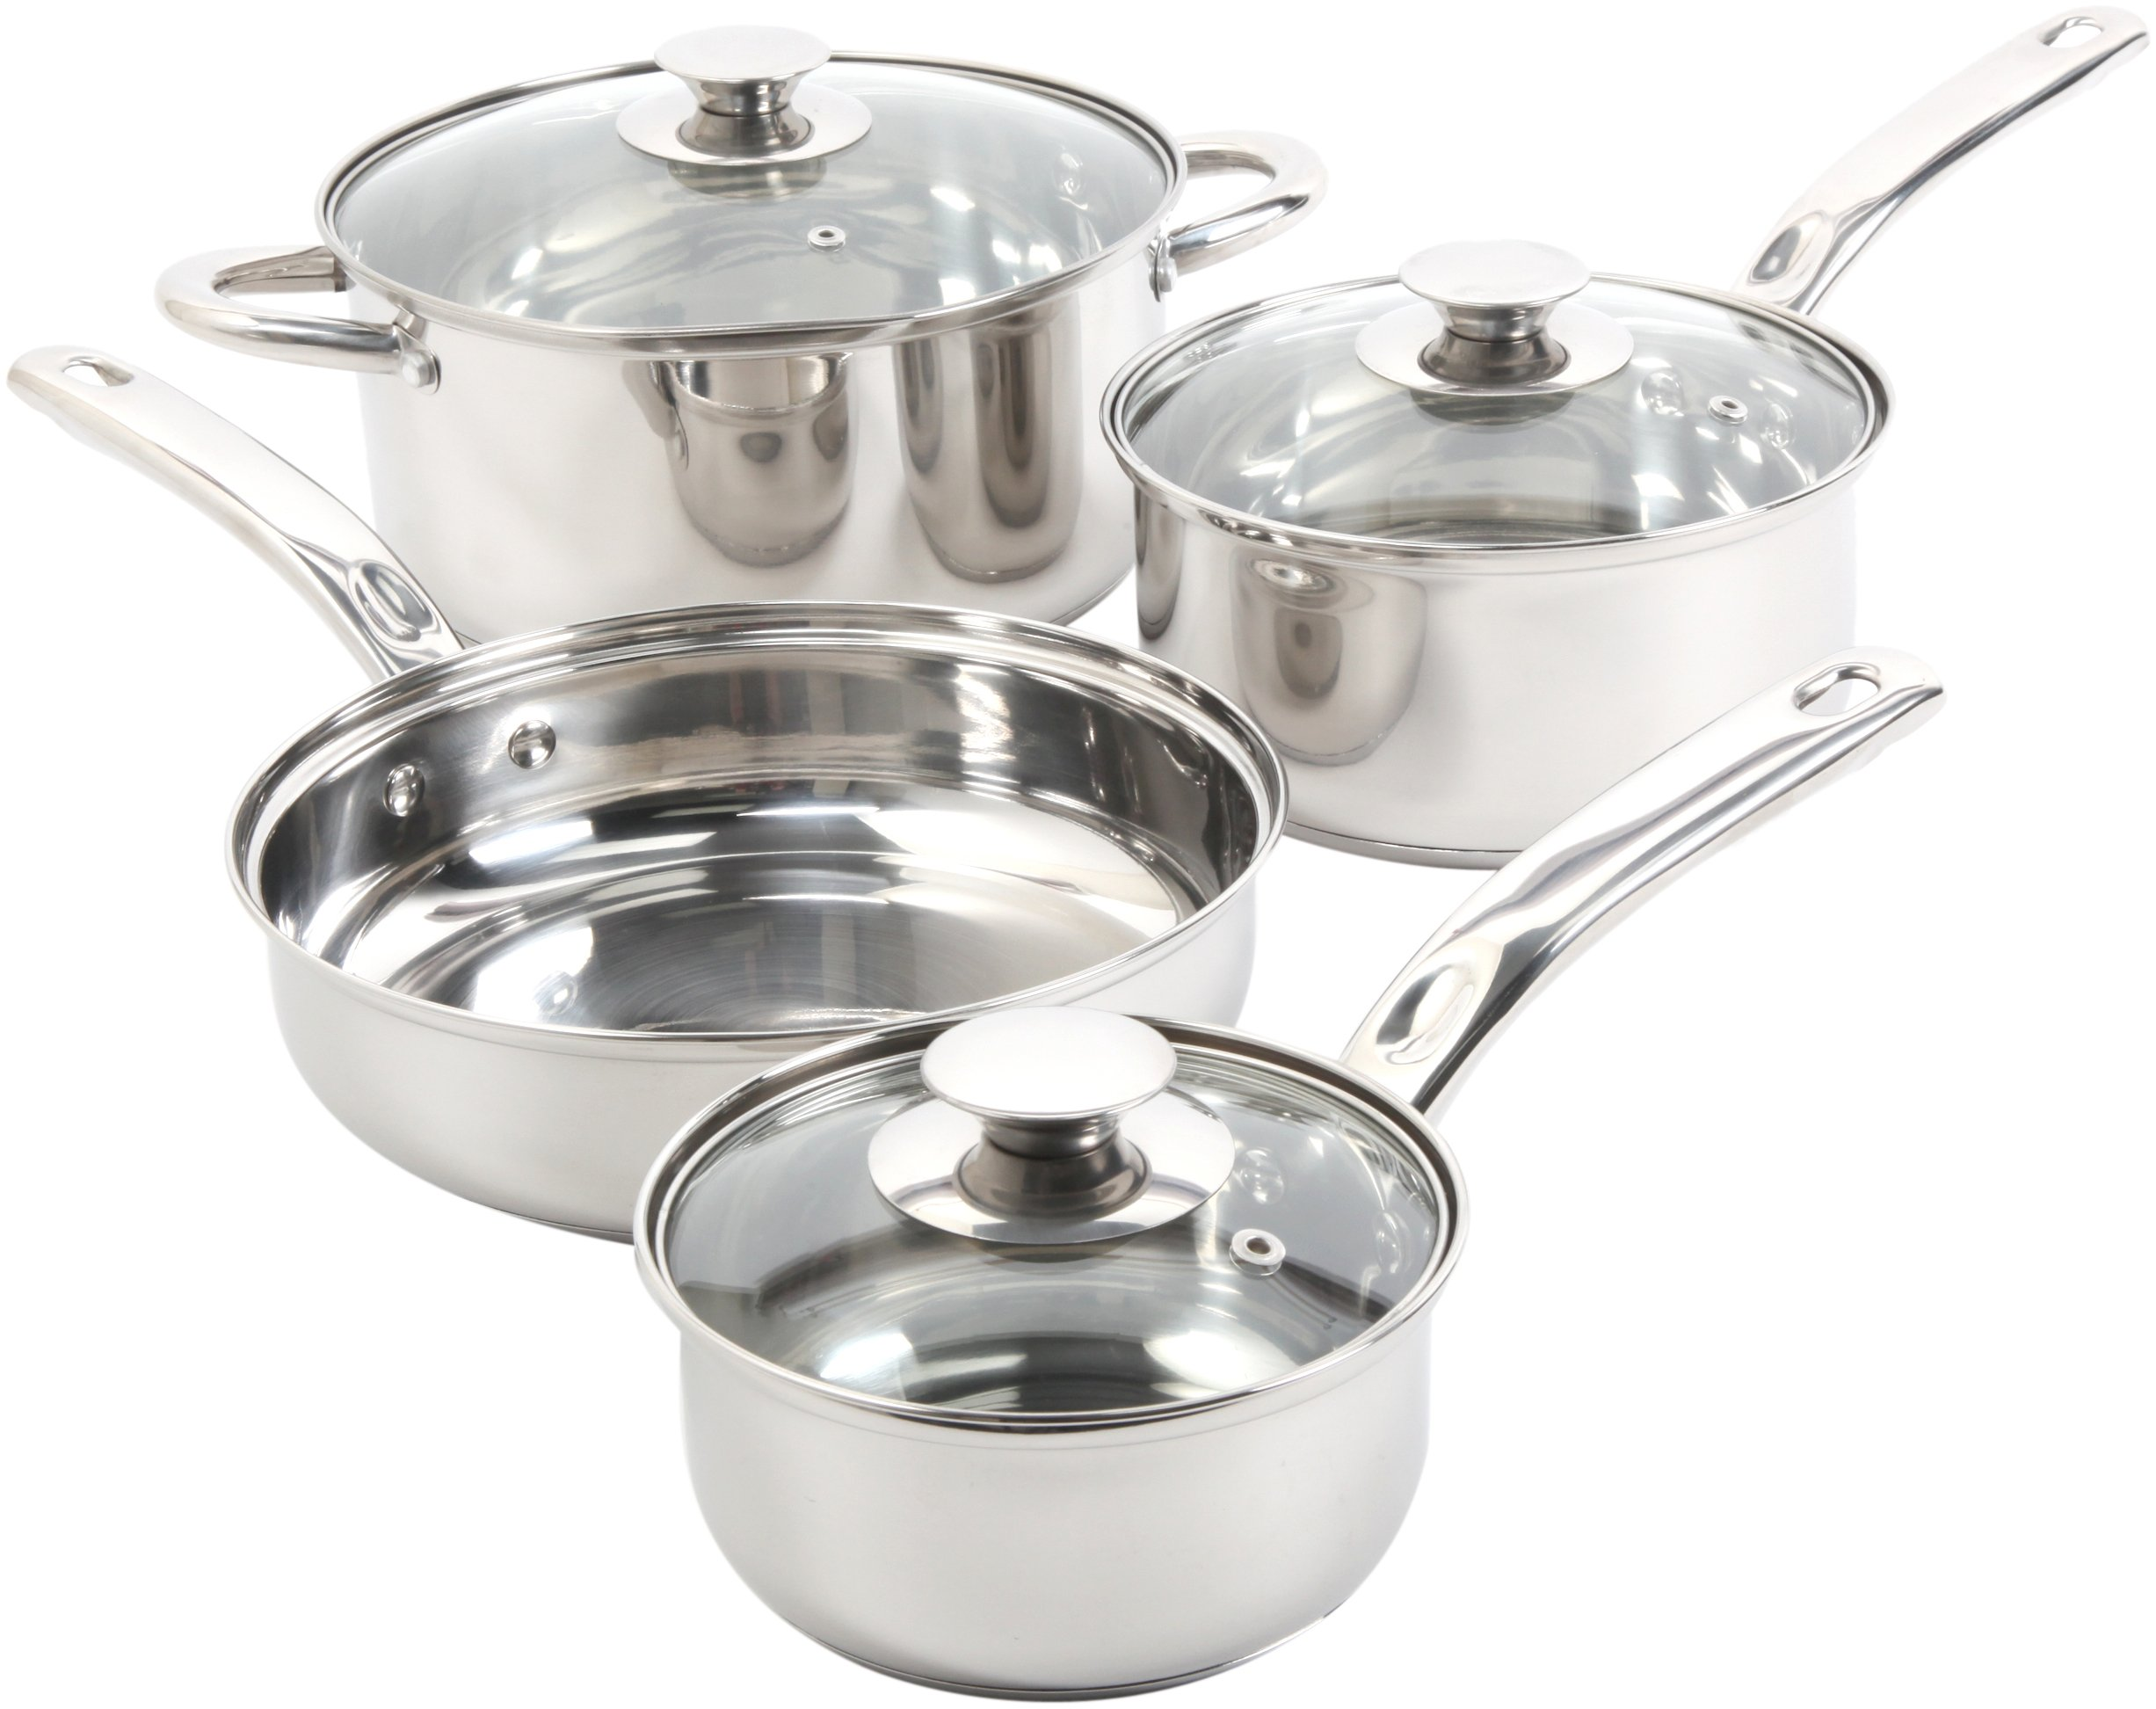 Sunbeam 91340.07 Ansonville 7-Piece Cookware Set, Silver